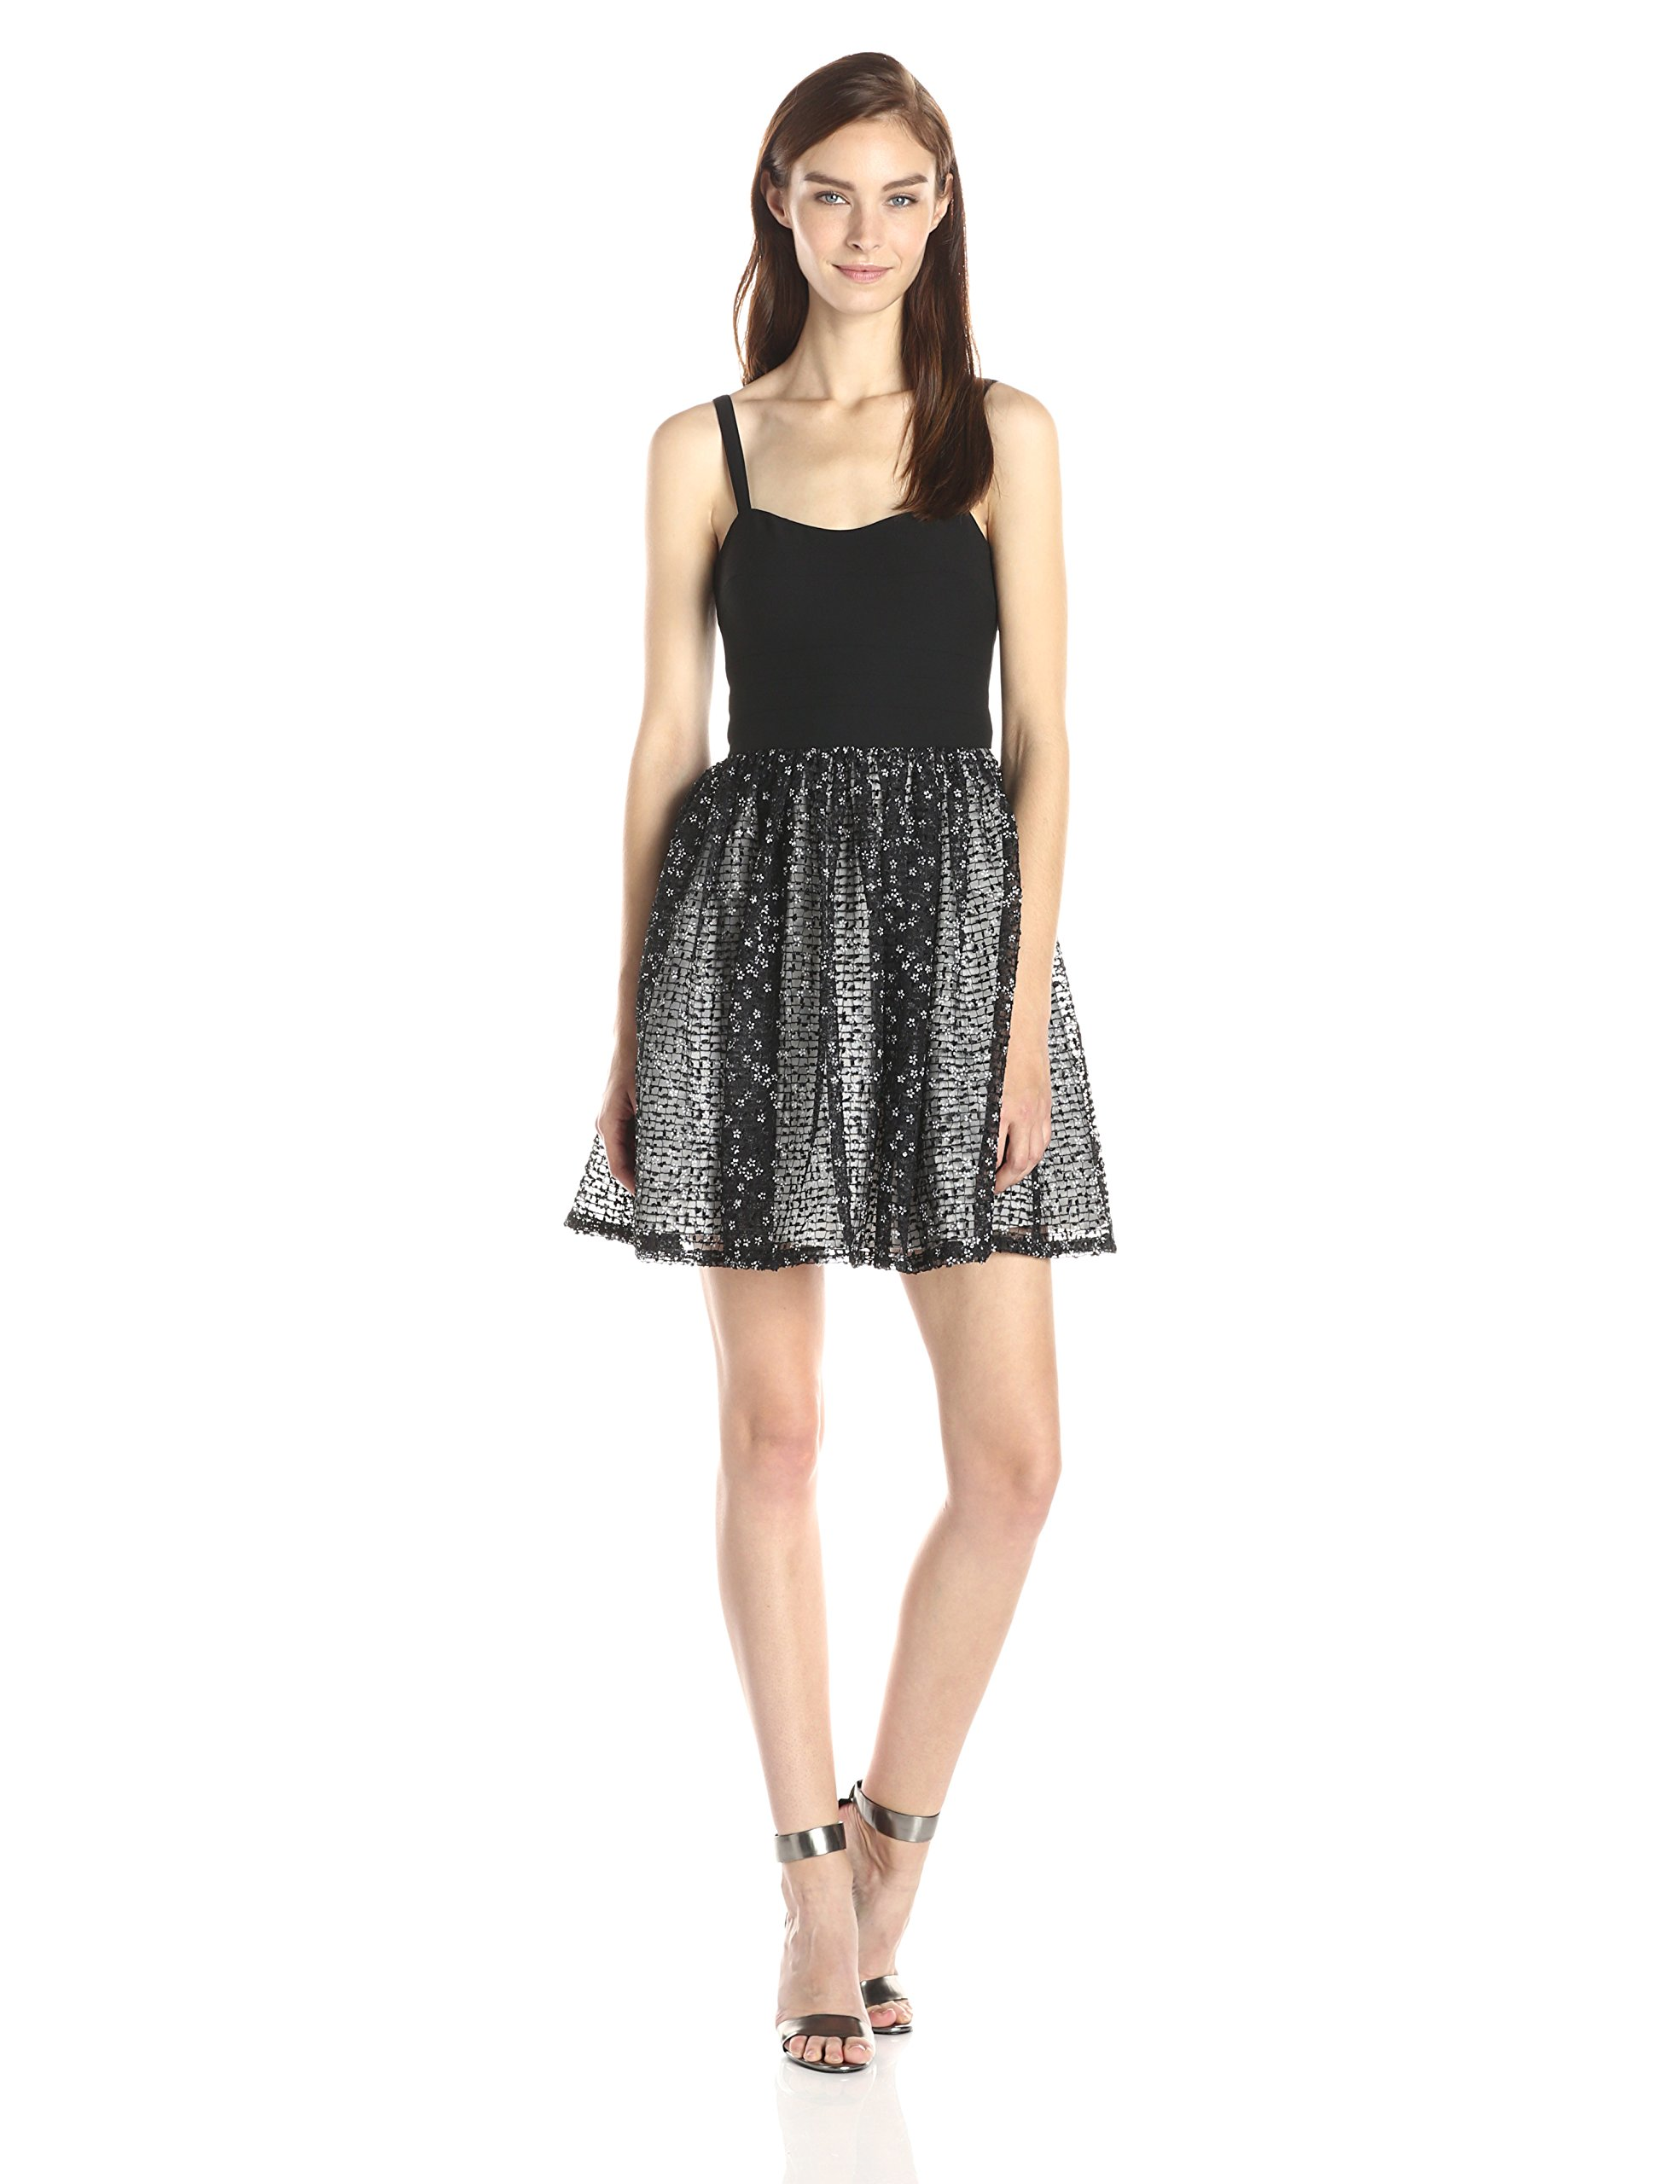 Aidan by Aidan Mattox Womens Cut-Out Stretch Top Dress with Lace Party Skirt